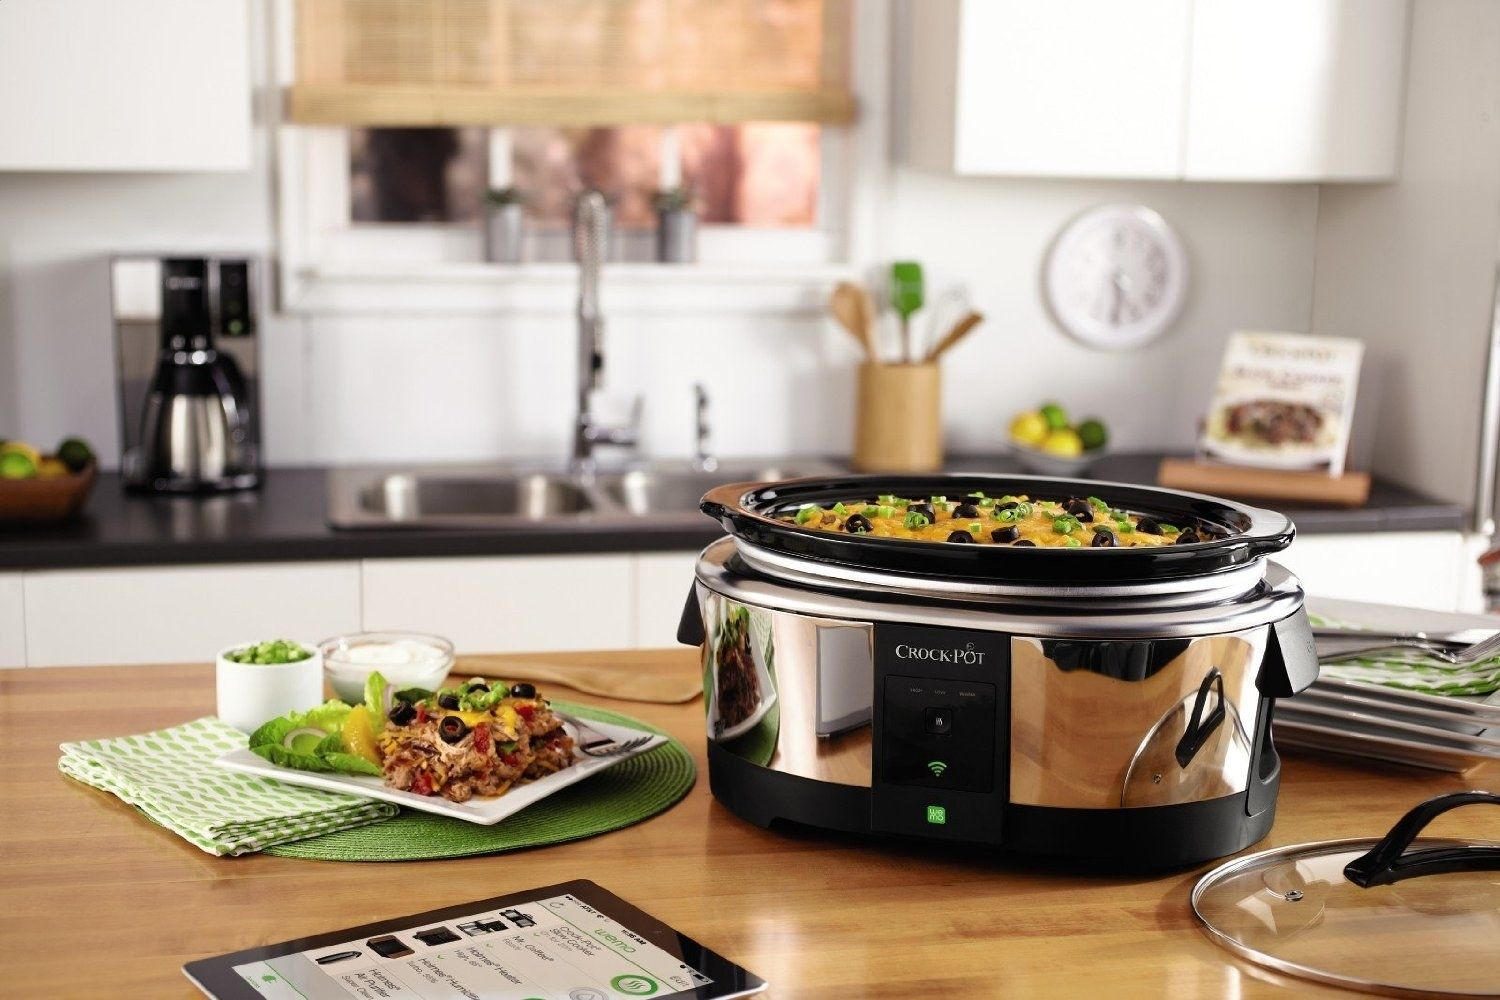 This wifi enabled slower cooker thatus adjustable via an app in